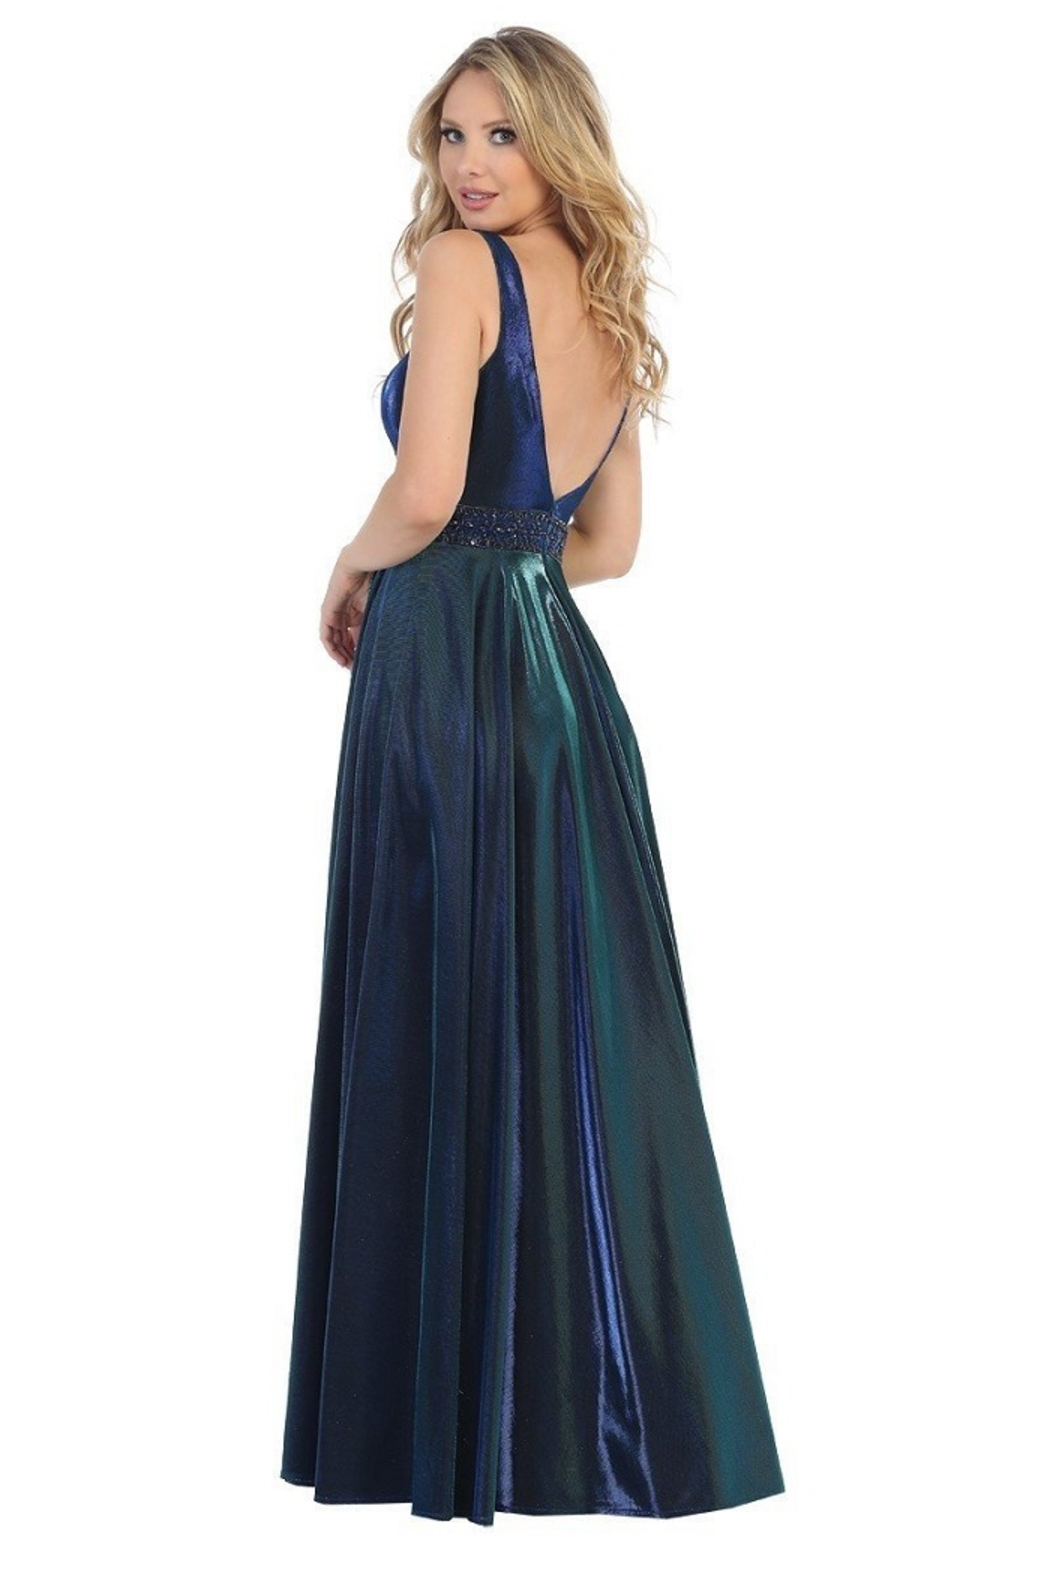 Let's Royal Blue Metallic A-Line Formal Long Dress - Front Full Image